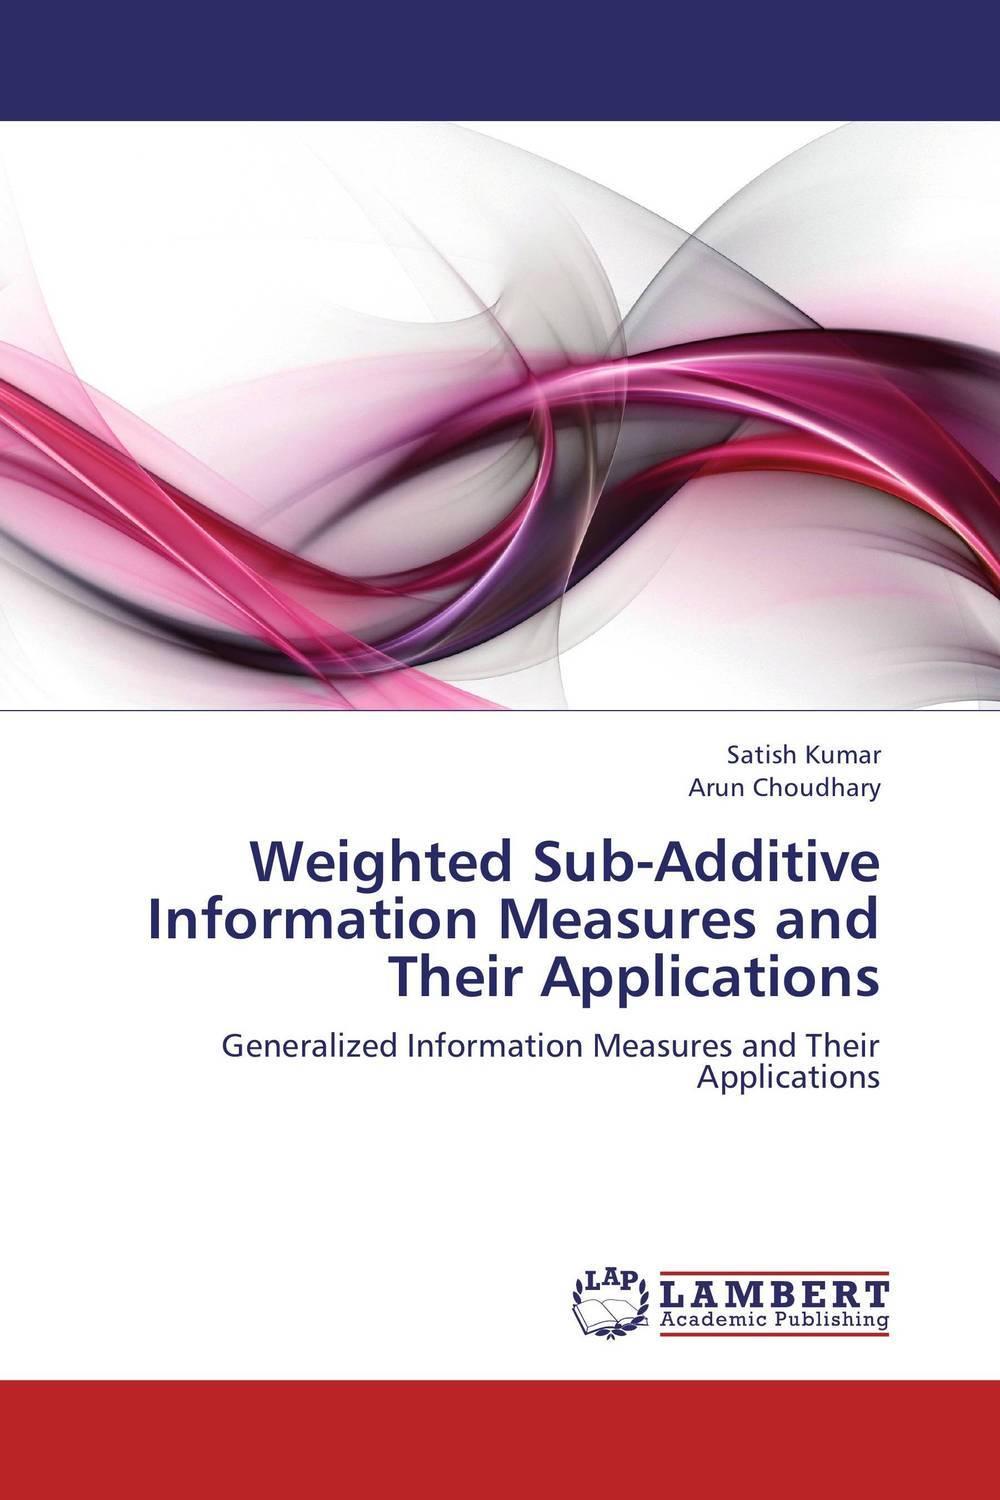 Weighted Sub-Additive Information Measures and Their Applications o k belwal measures of information and their applications to various disciplines